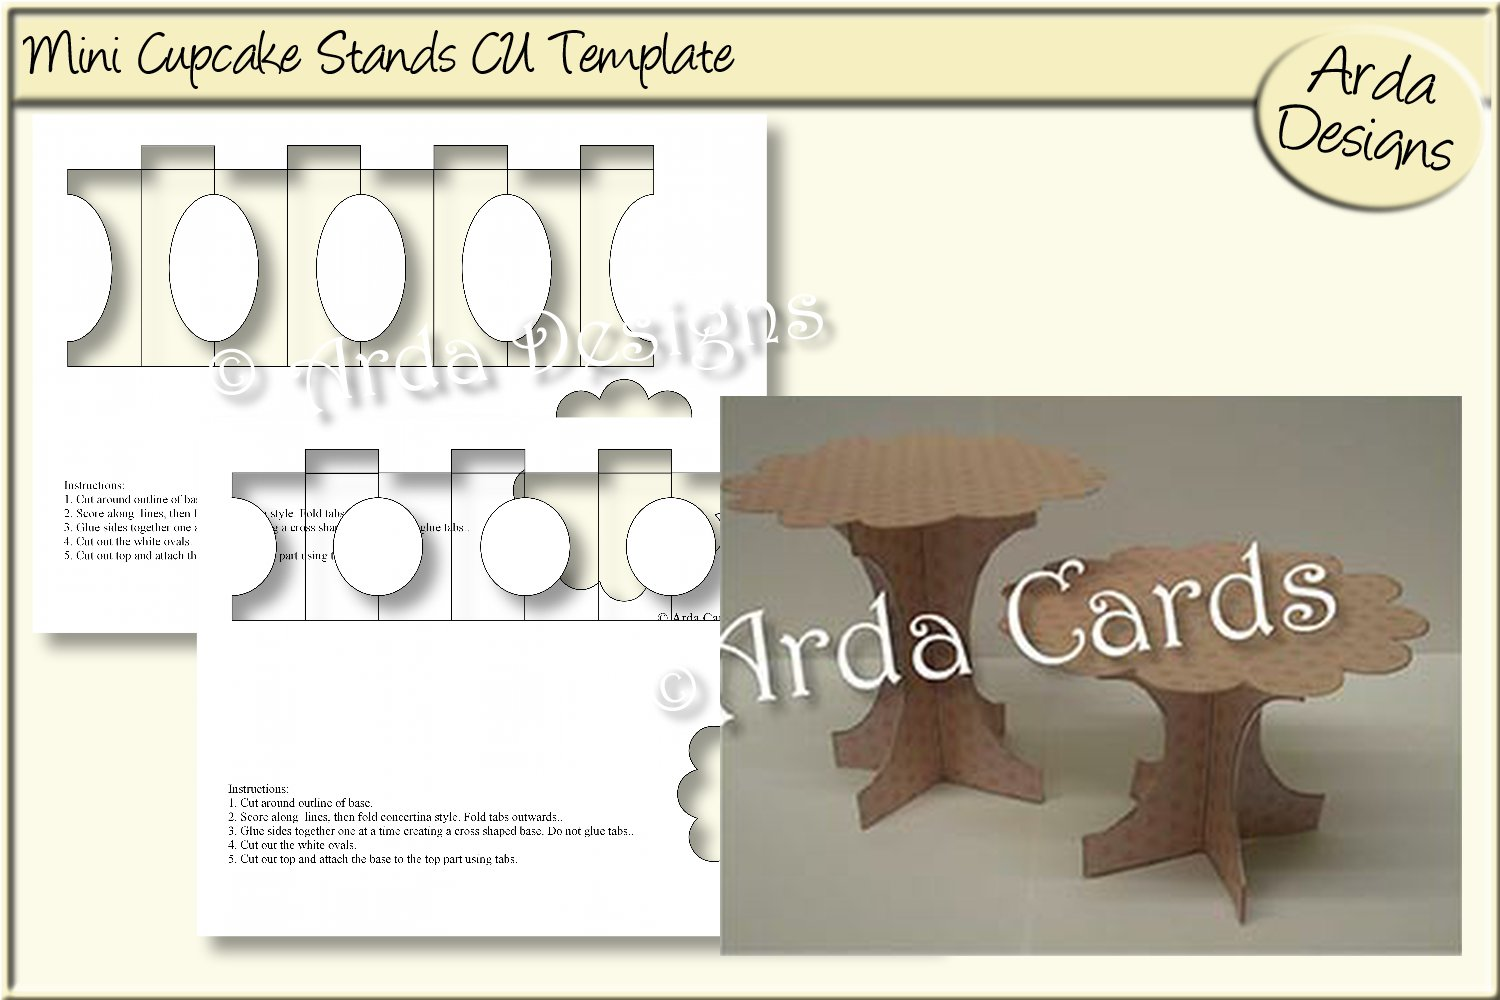 Download Free Mini Cupcake Stands Cu Template Graphic By Arda Designs for Cricut Explore, Silhouette and other cutting machines.